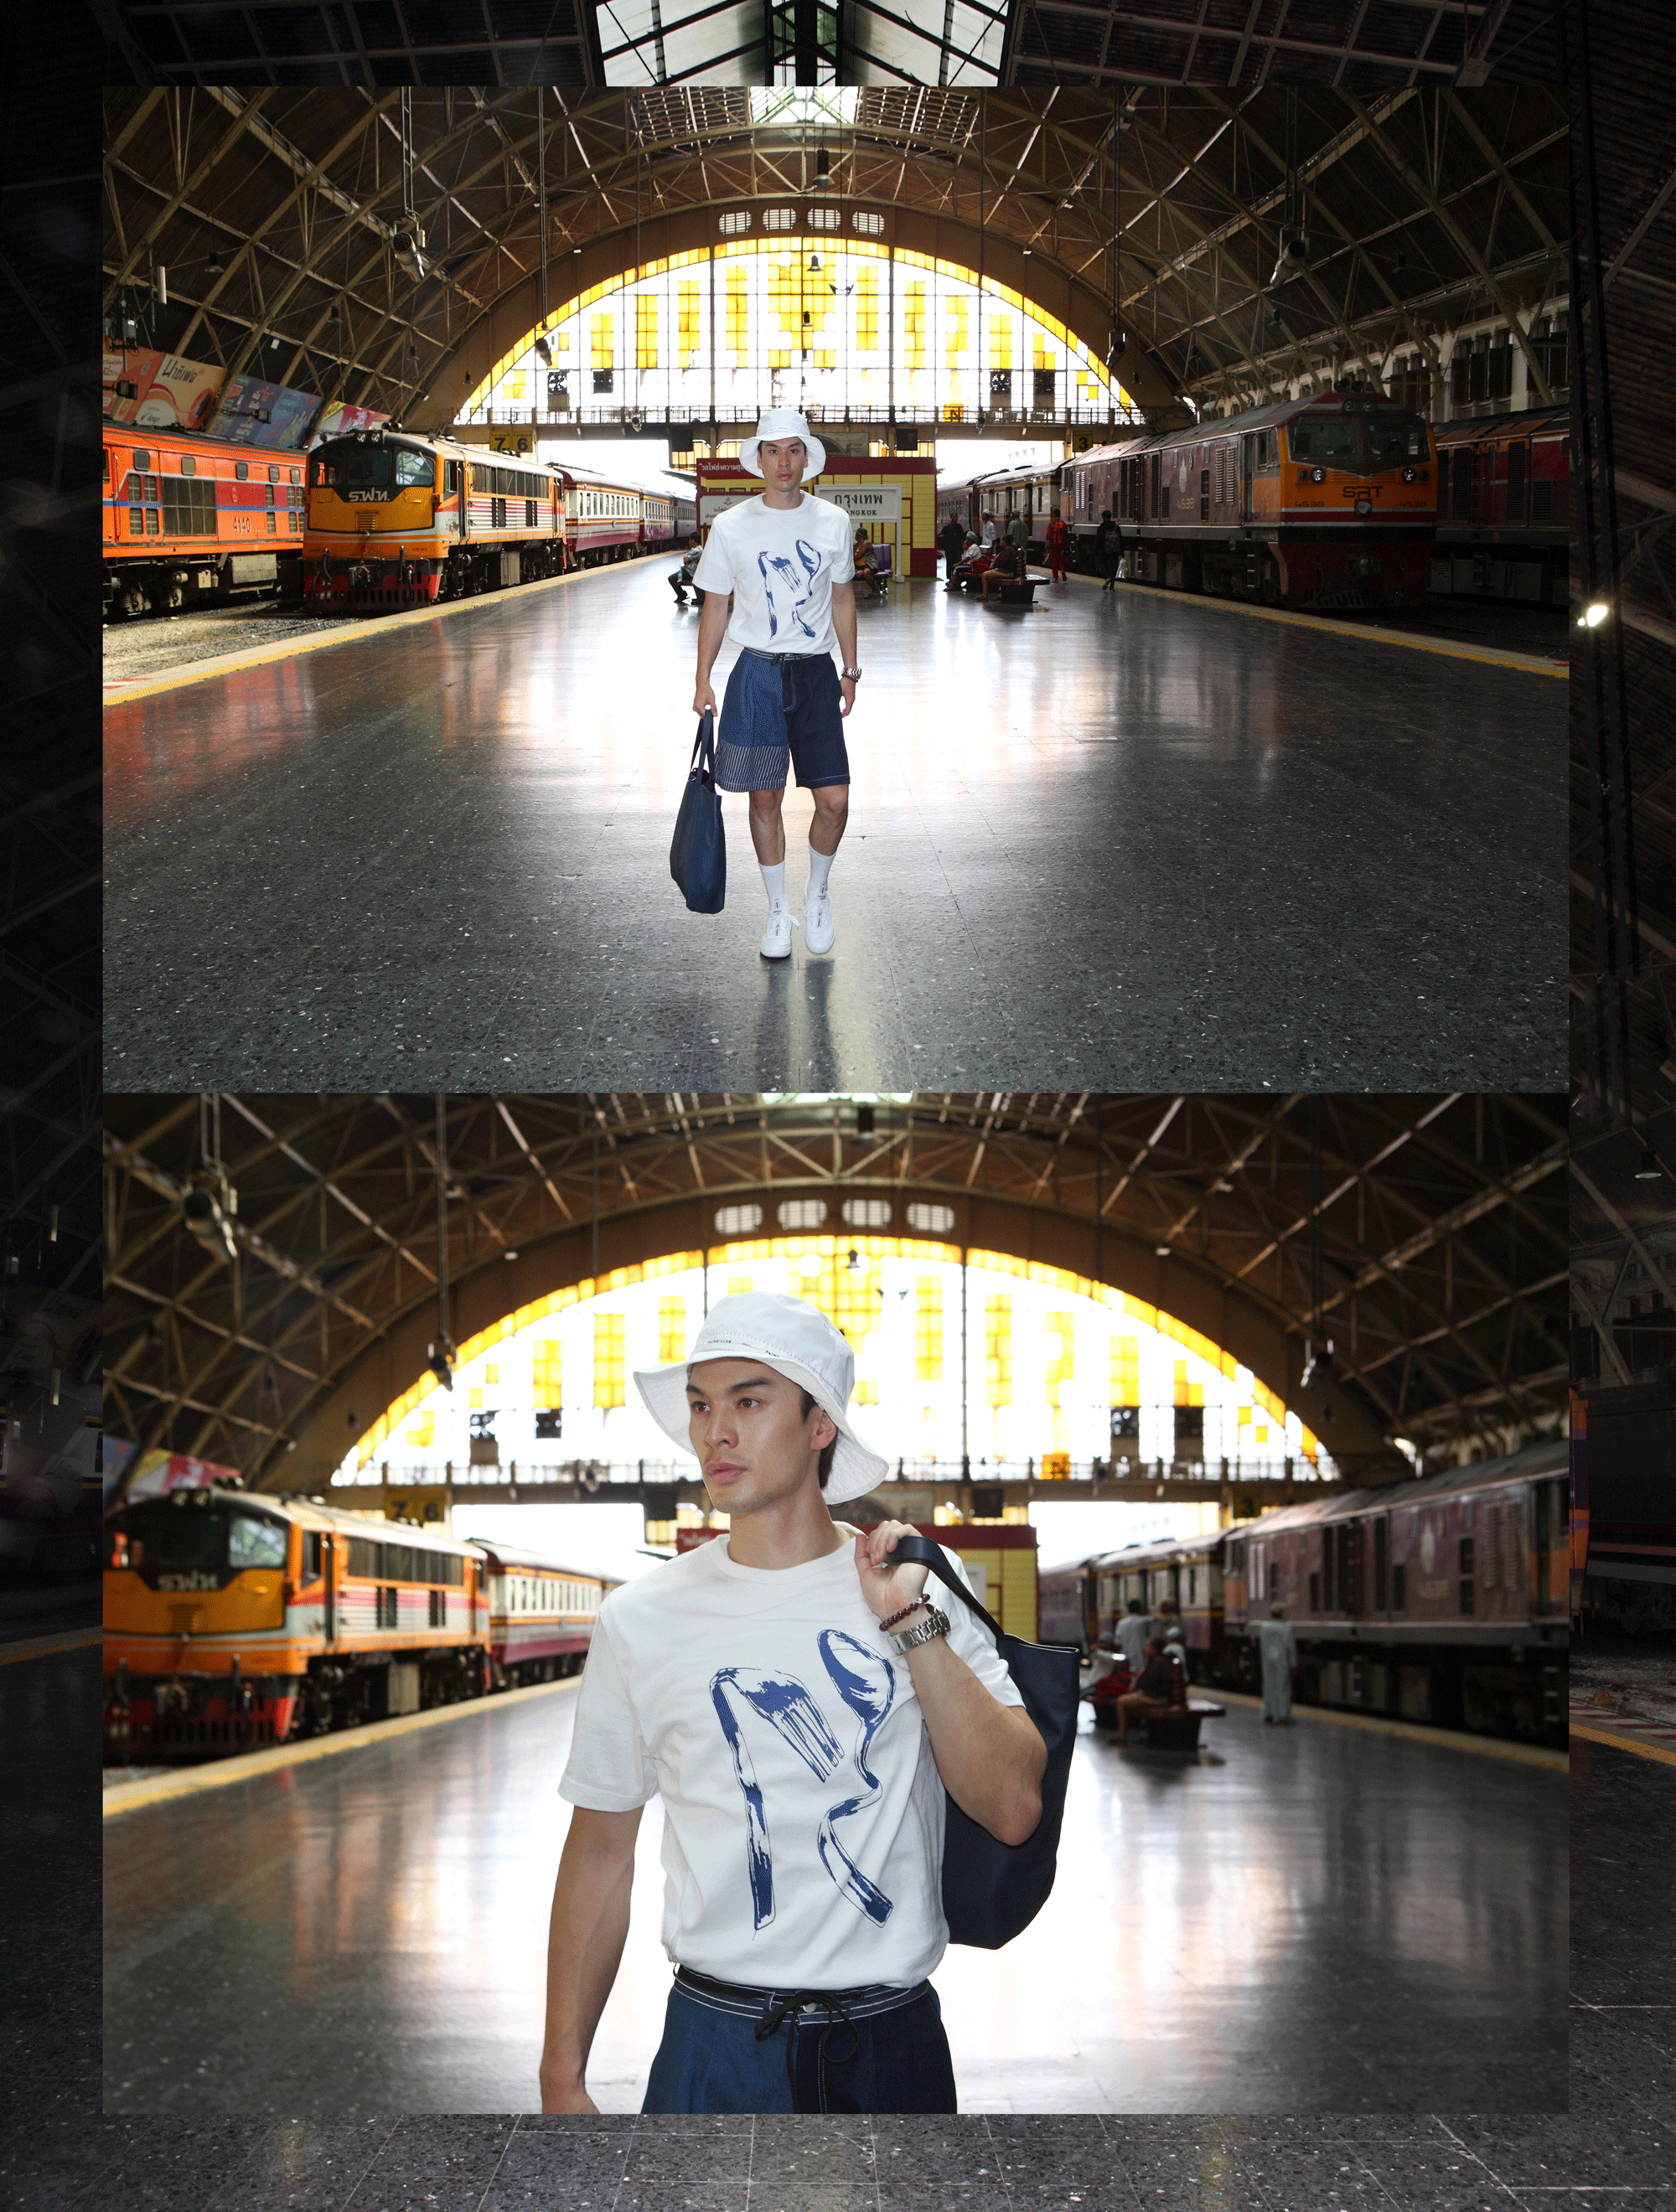 clothes : Everyday Karmakamet / hat : PAINKILLER / bag : CONTAINER